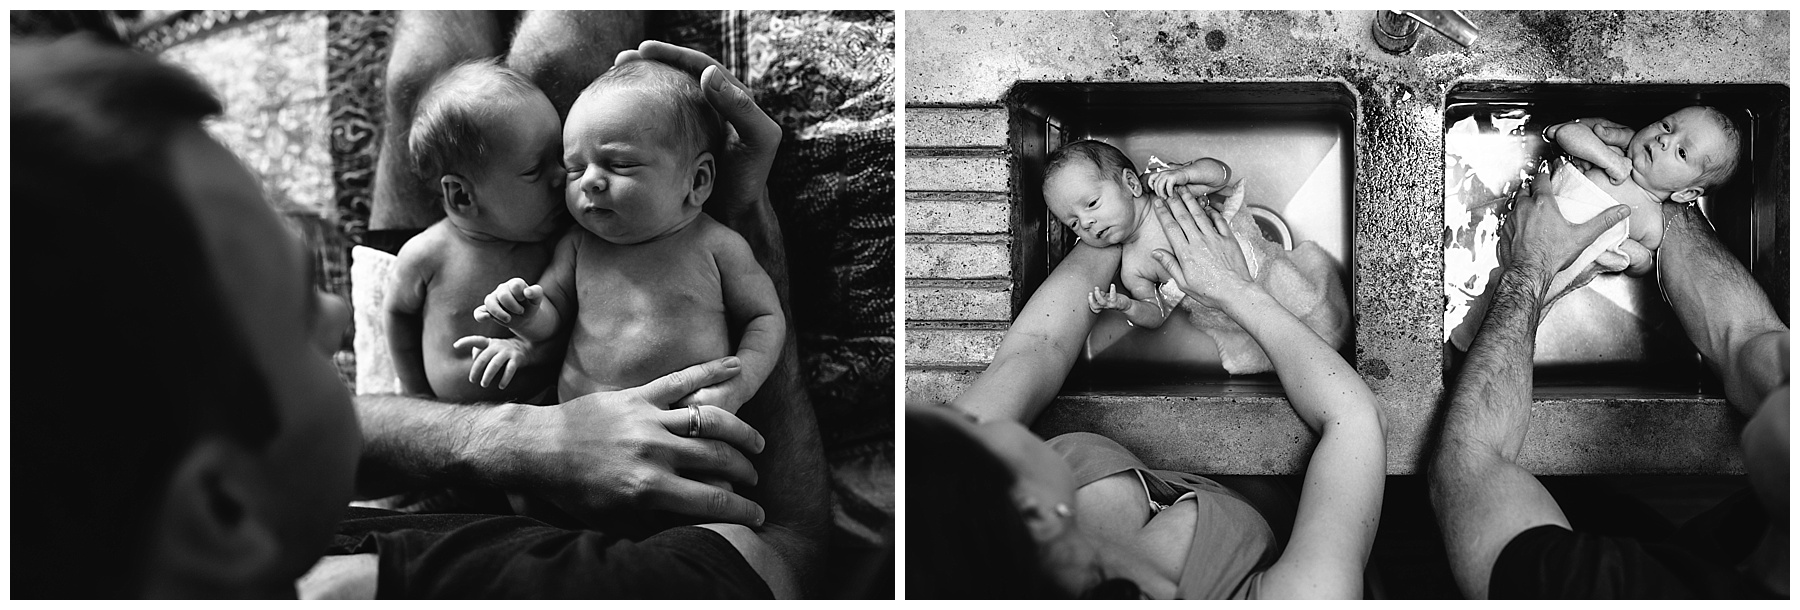 berwick newborn photography - lifestyle - twins